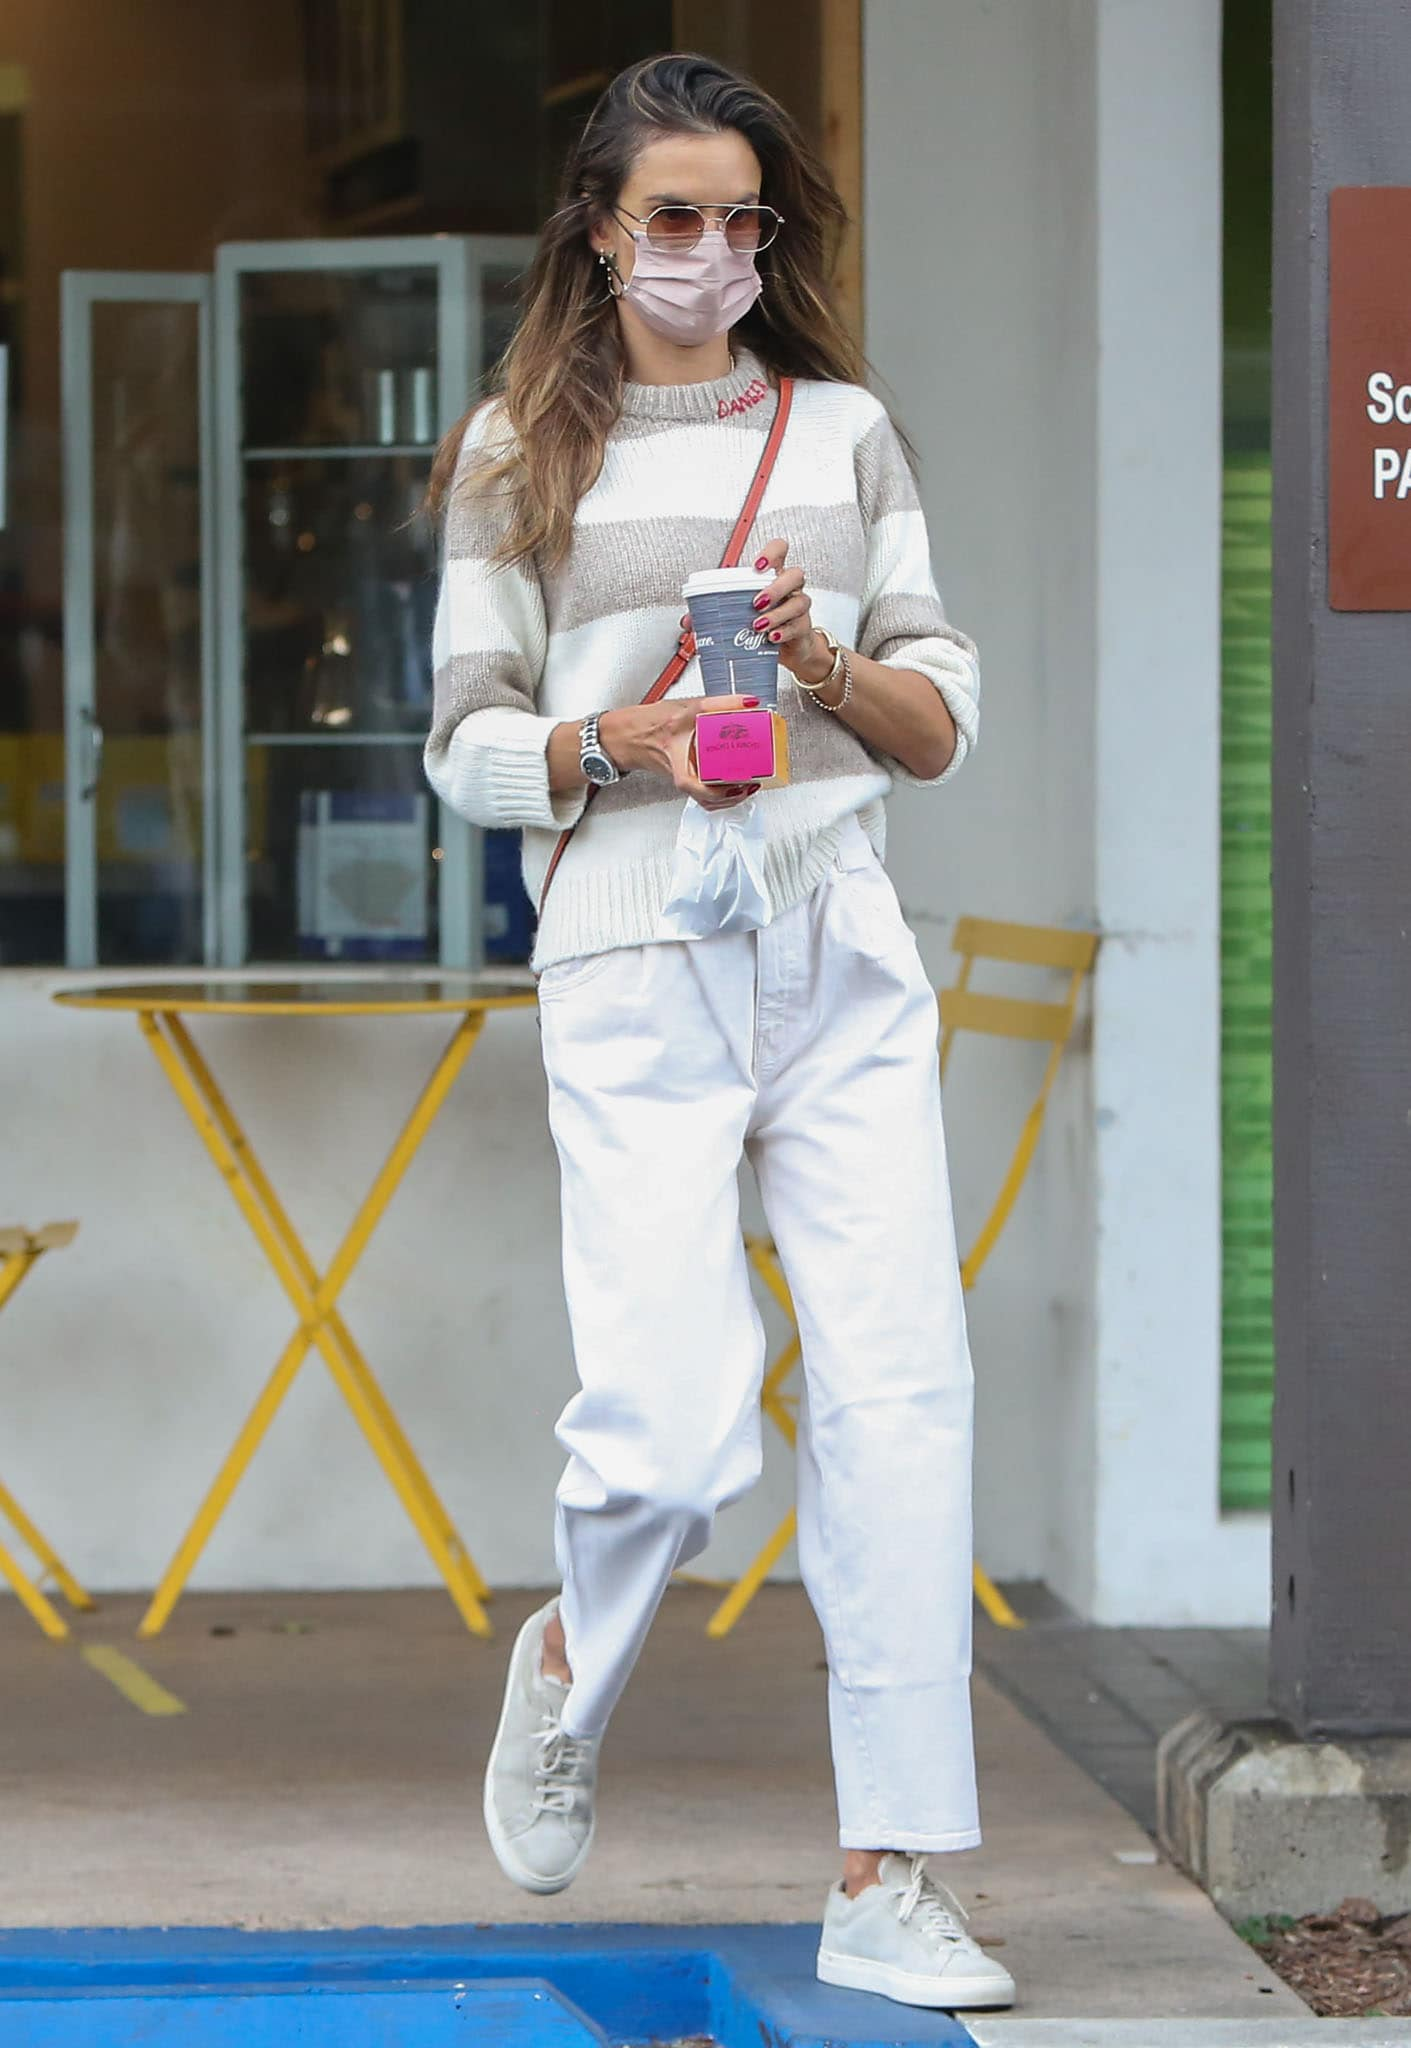 Alessandra Ambrosio goes on a solo shopping trip at Soul Cycle on March 3, 2021